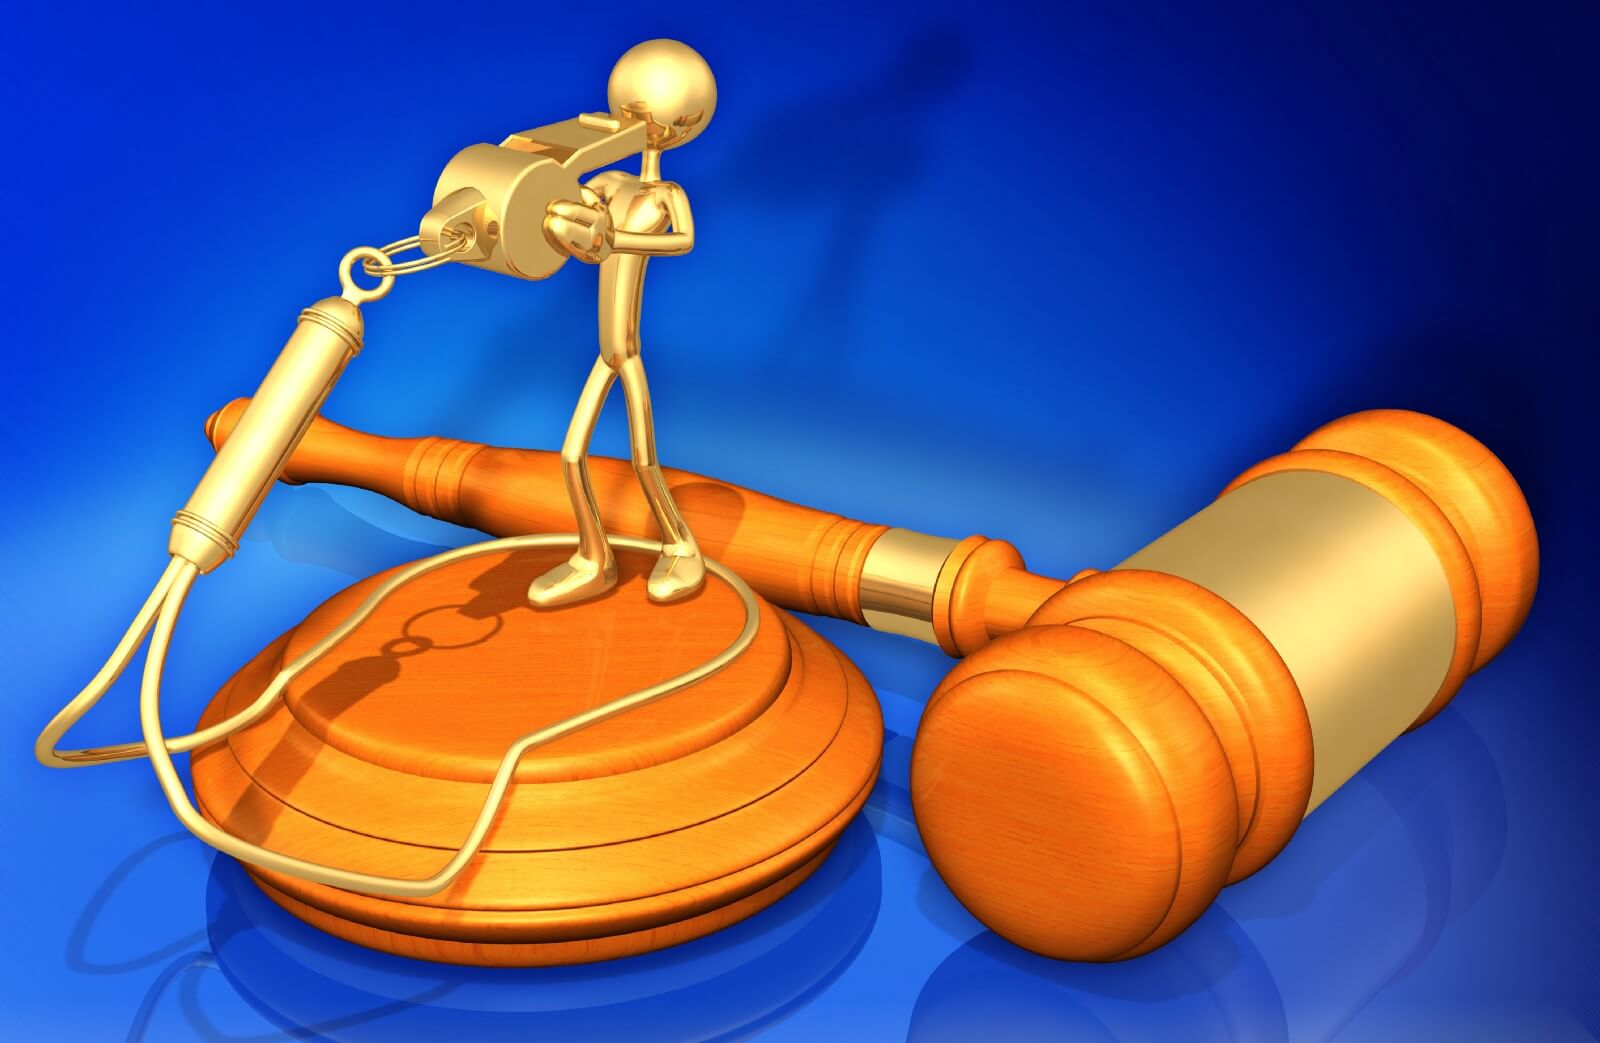 Golden three-dimensional human cartoon figure blowing into an oversized whistle attached to a neckloop while standing on a gavel pad with a gavel behind it.